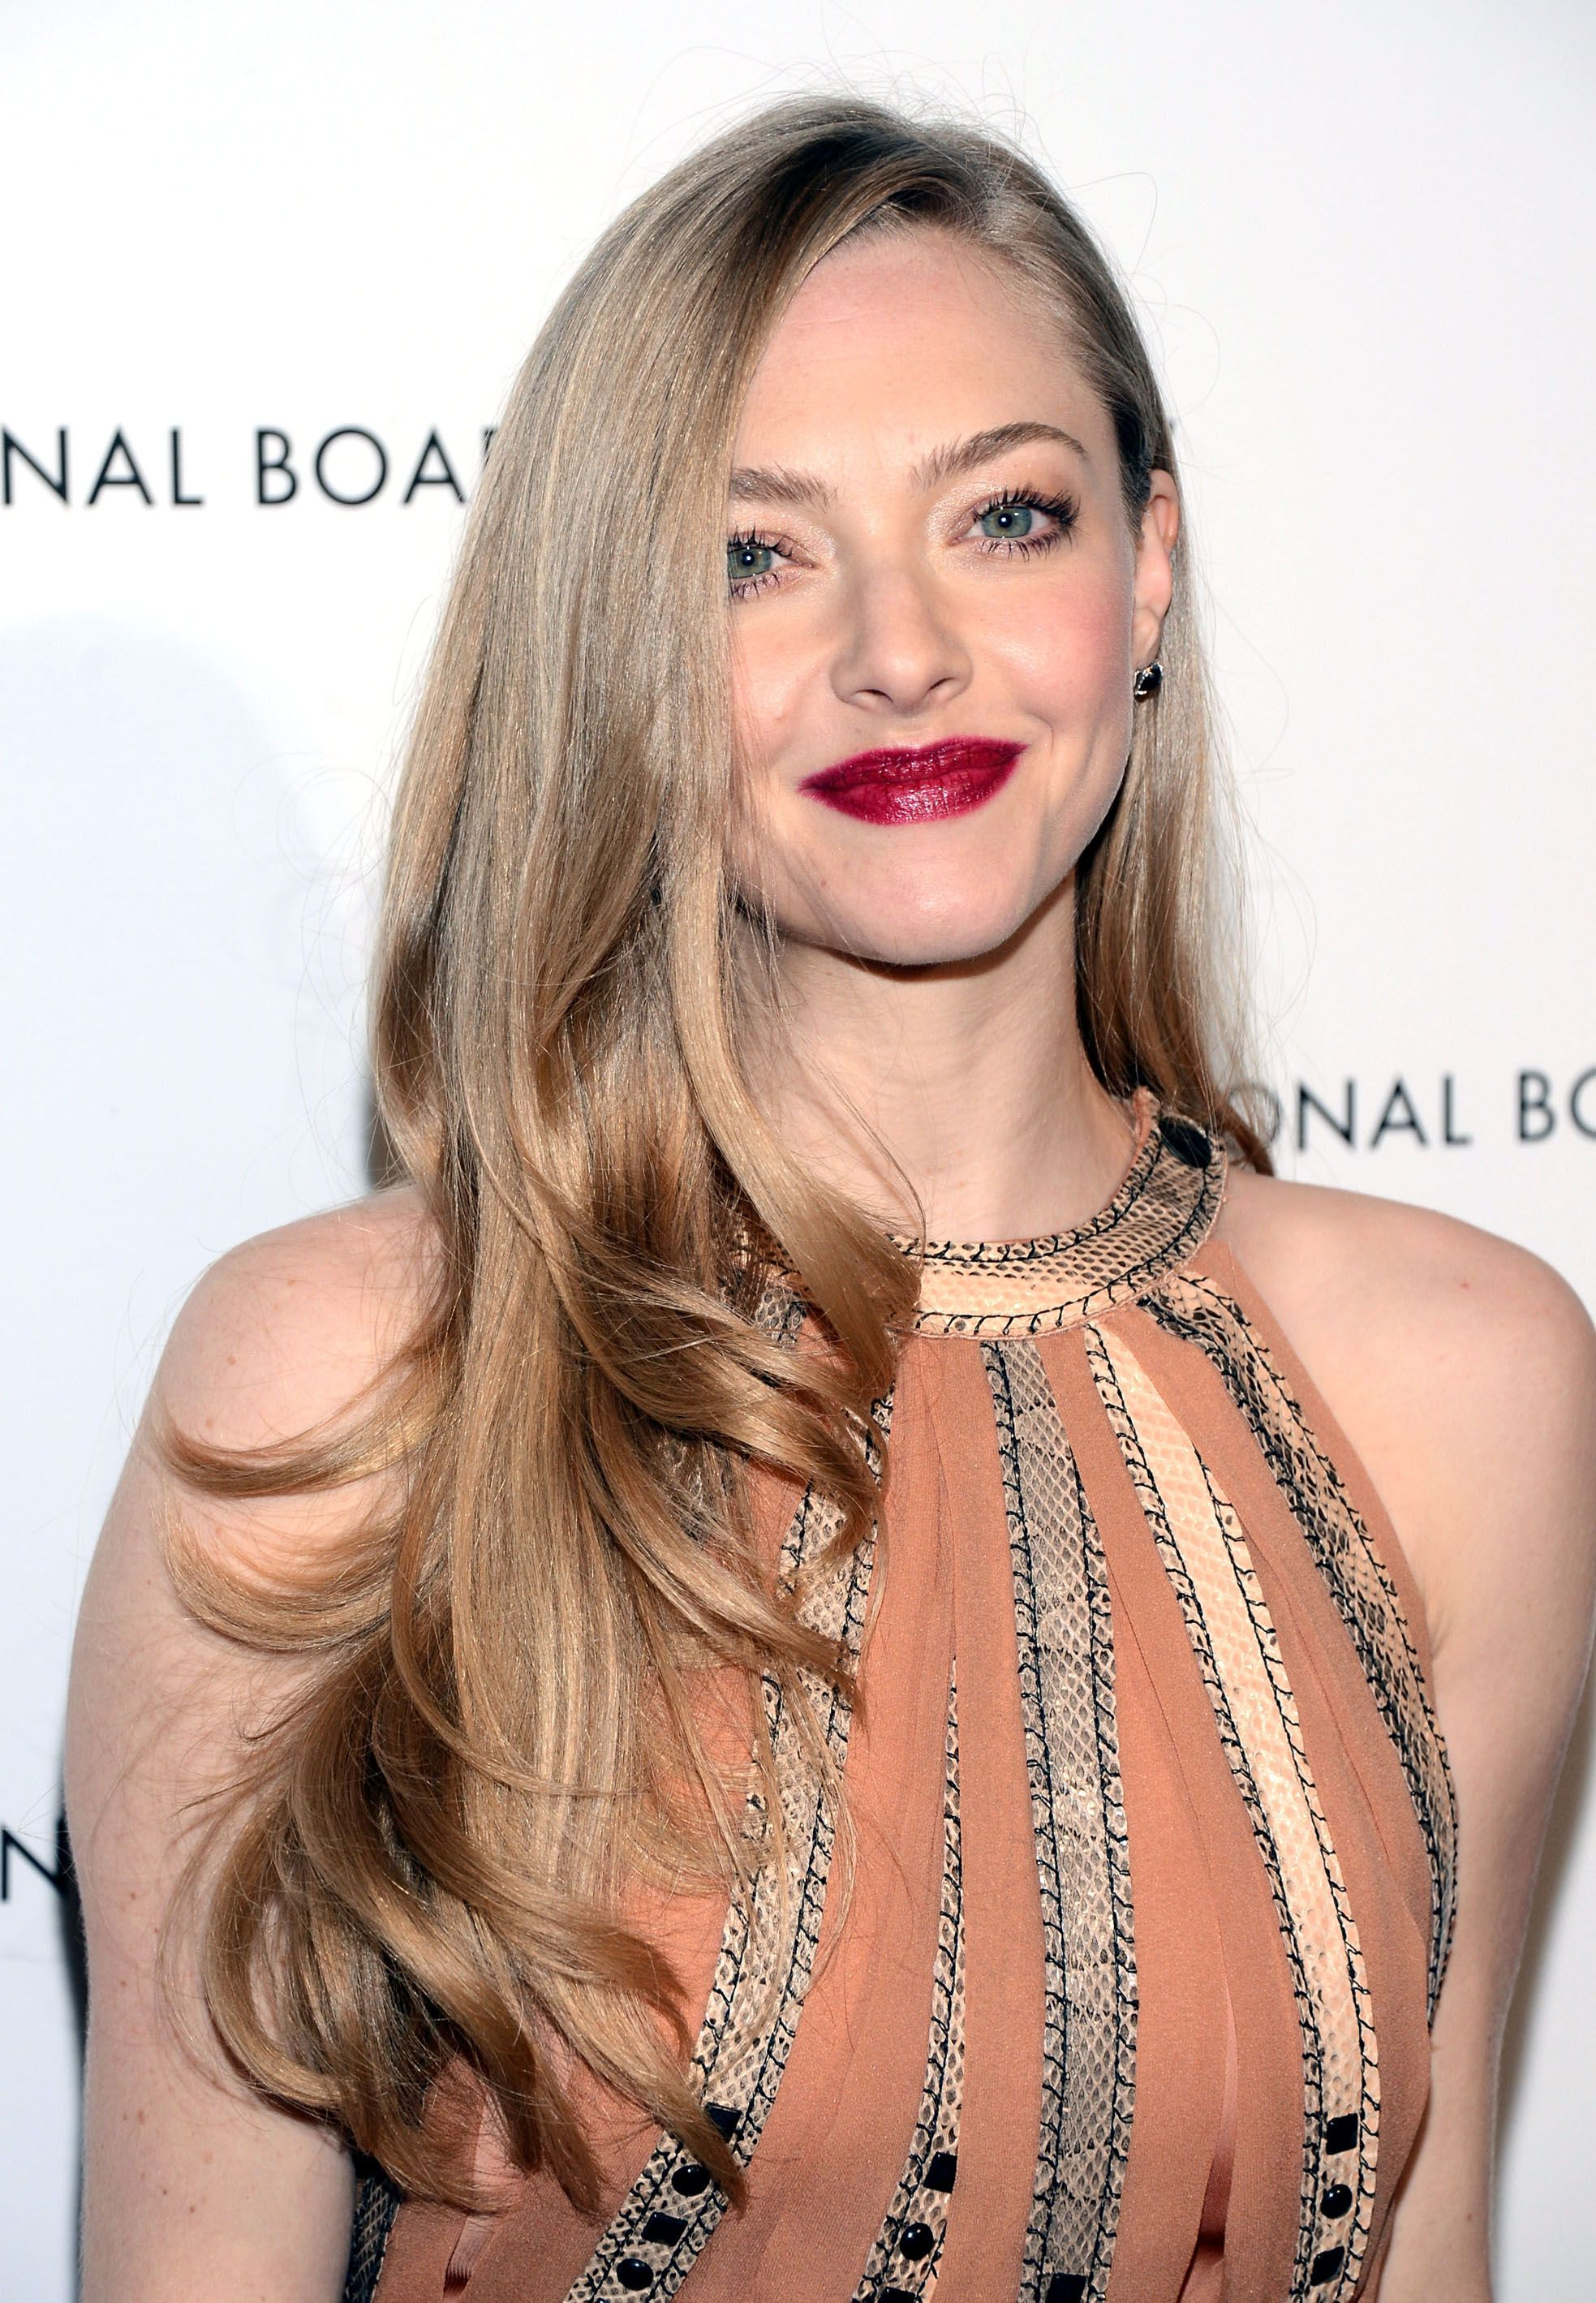 Get The Look: Amanda Seyfried's ShinyWaves